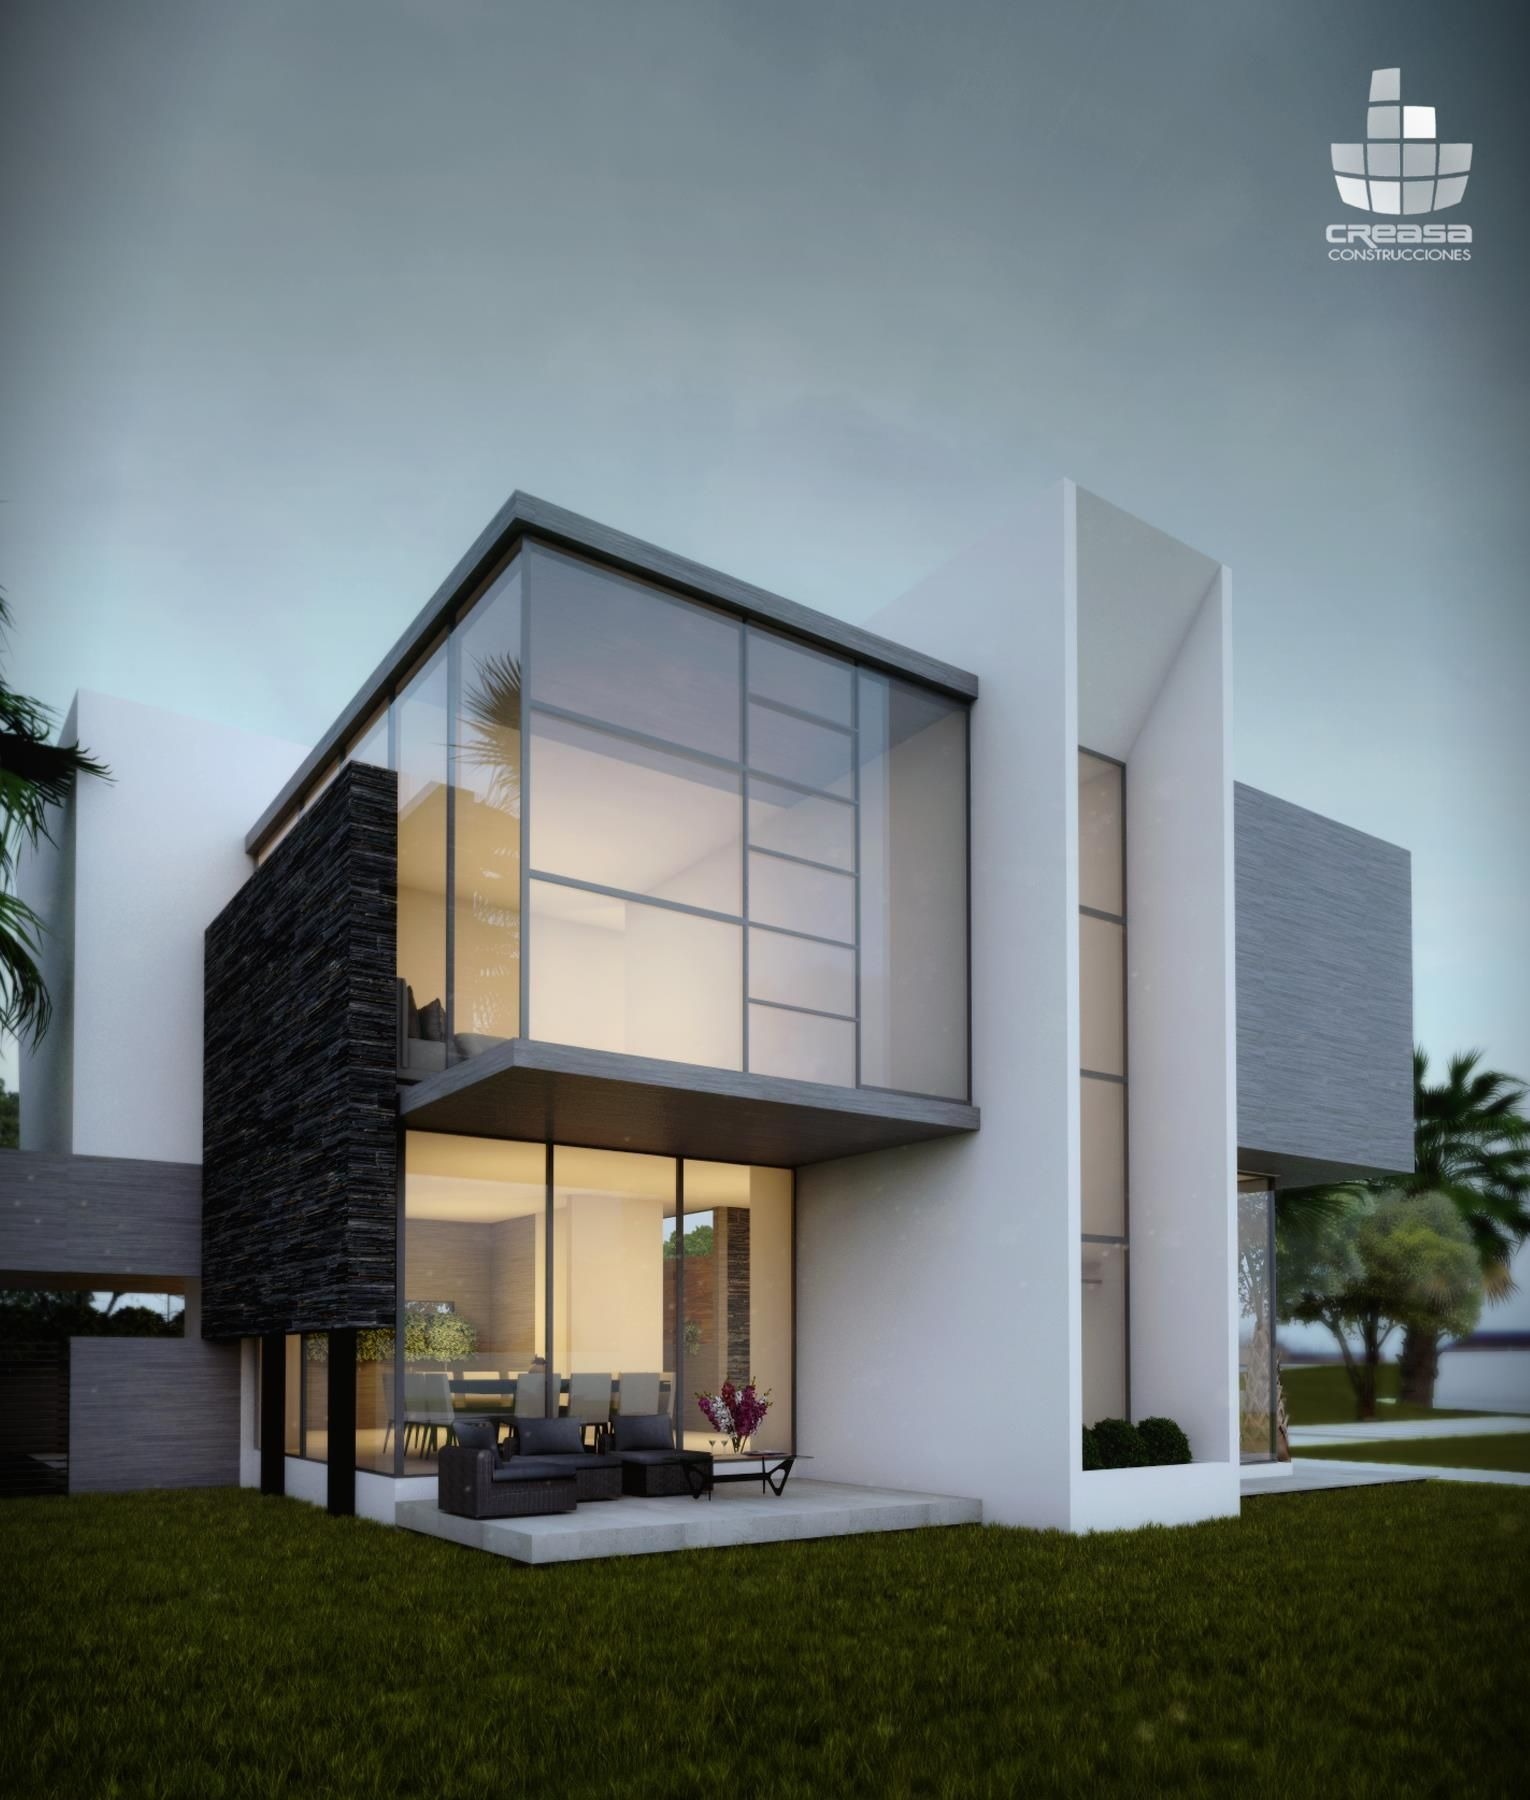 Creasa modern architecture pinterest villas house and architecture Modern villa architecture design